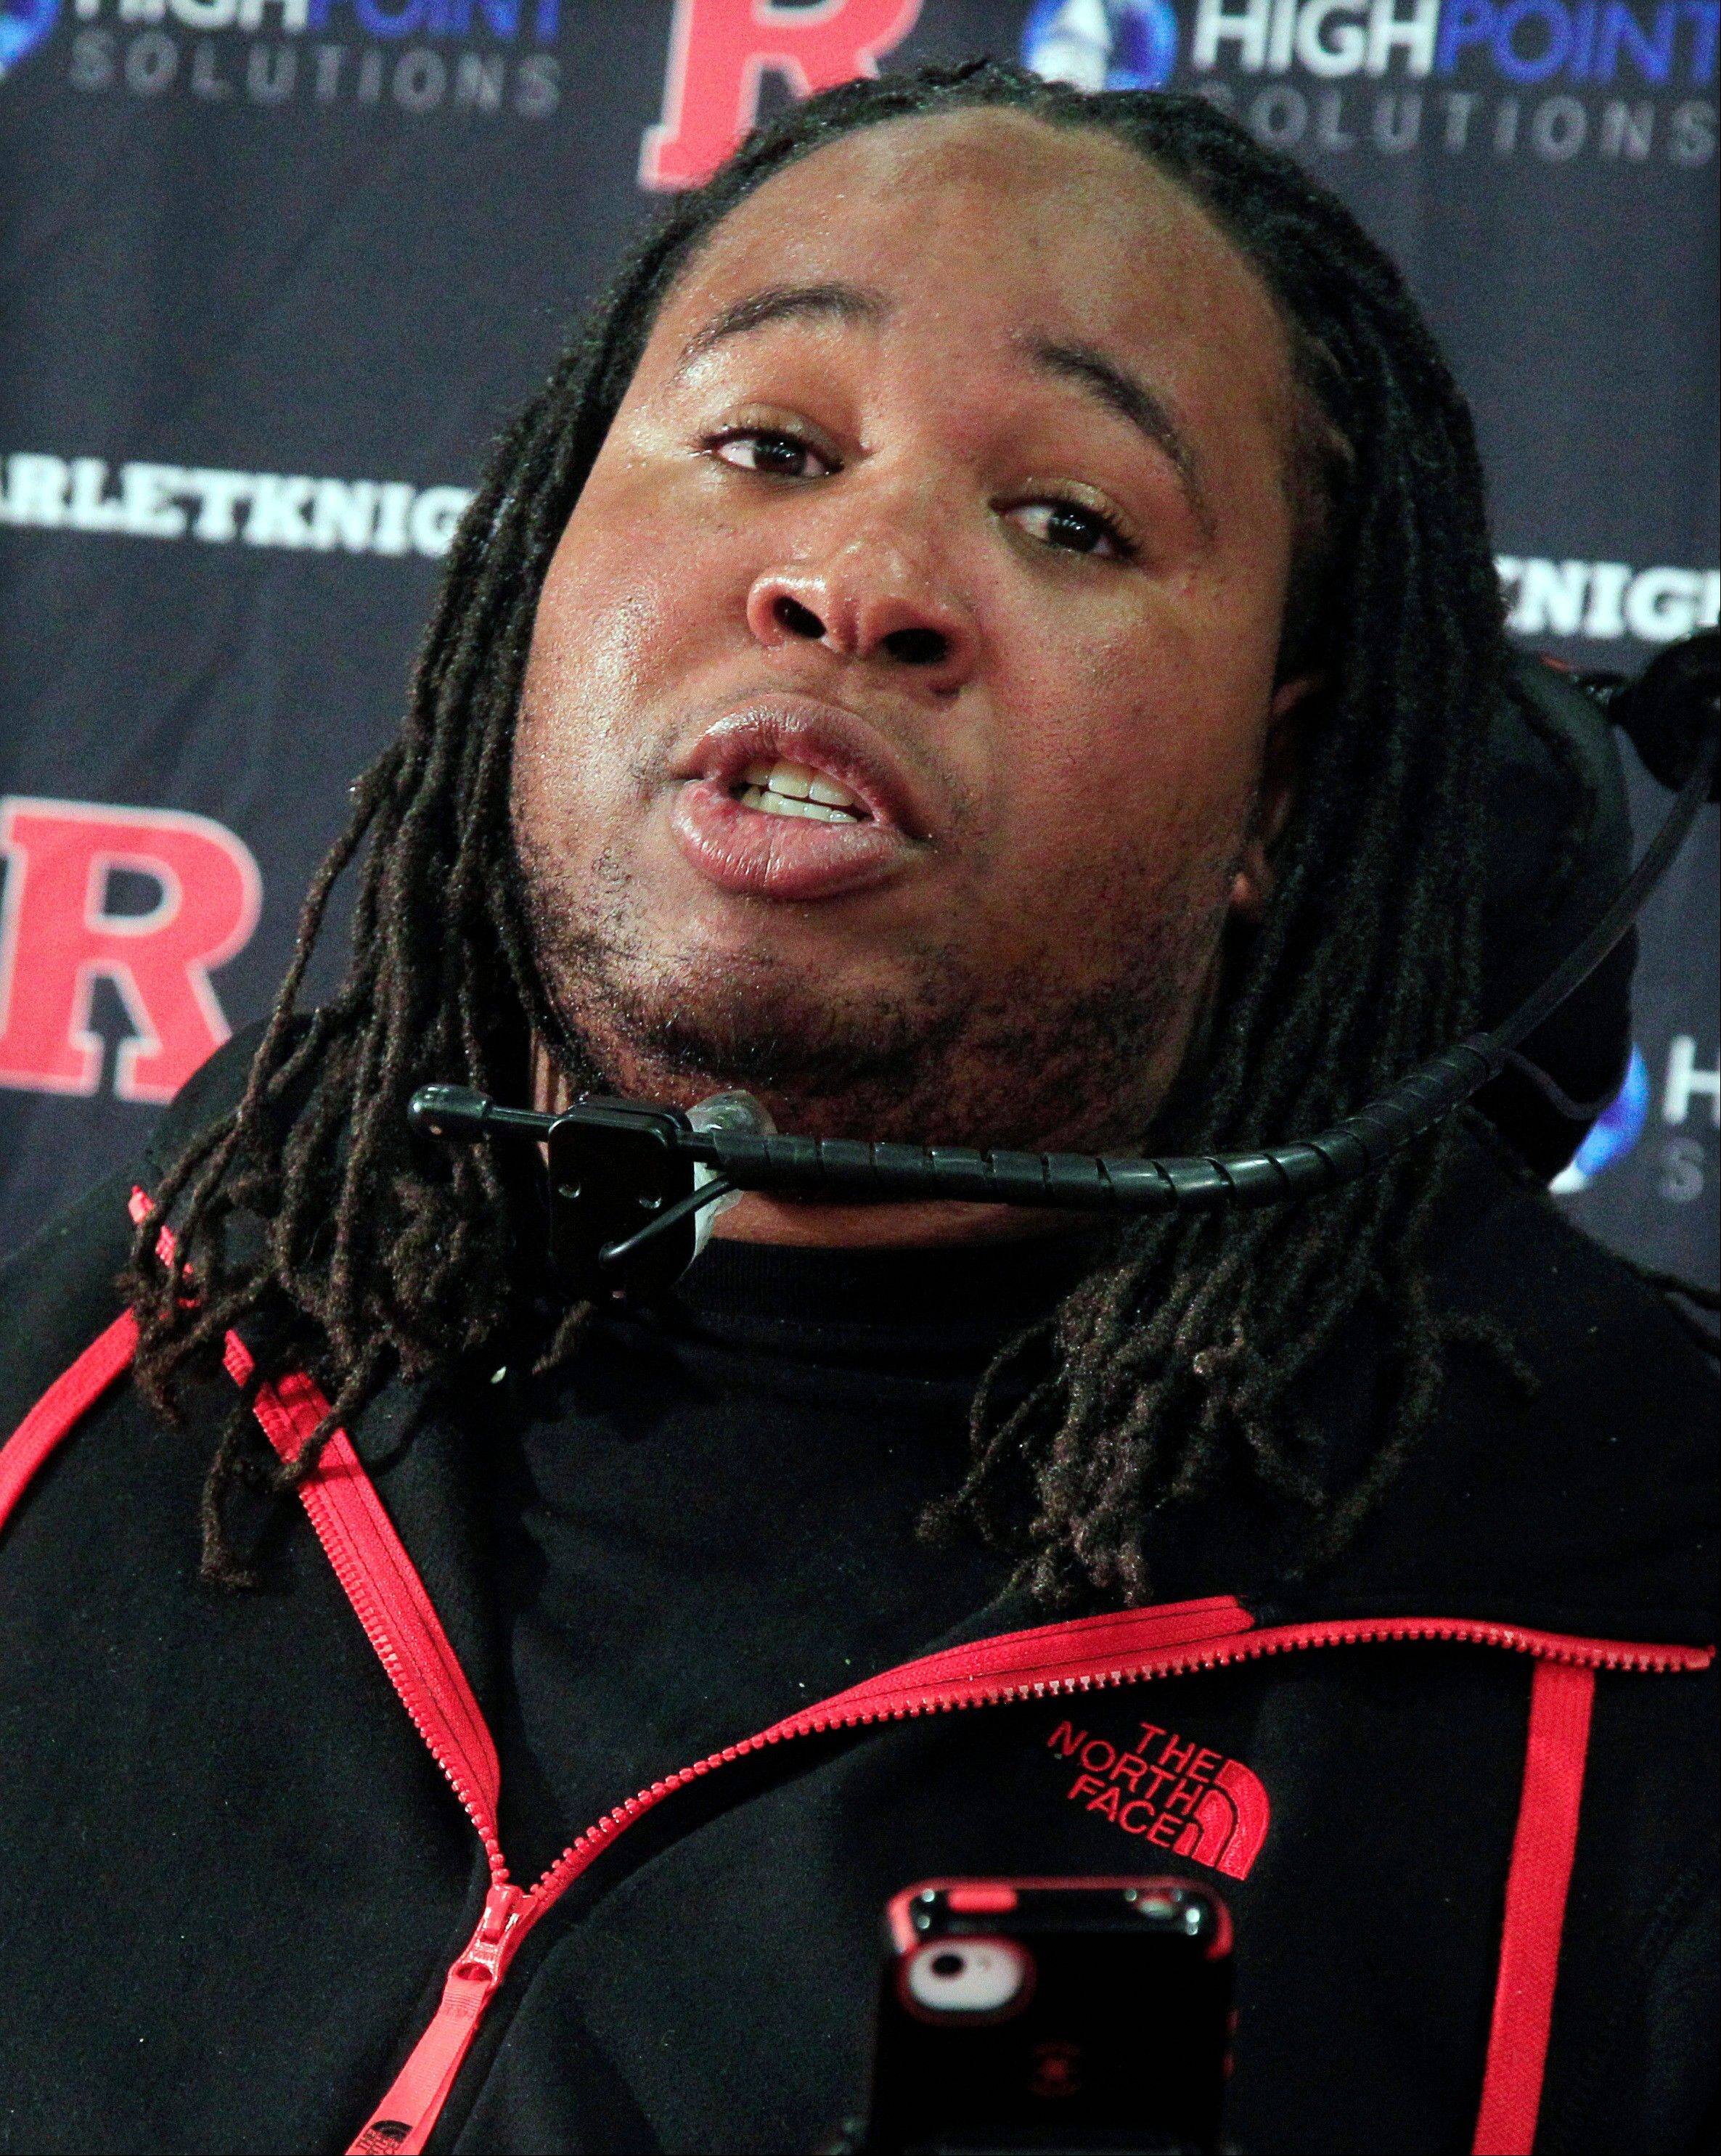 This May 2, 2012 file photo shows paralyzed former Rutgers defensive tackle Eric LeGrand answering a question during a news conference in Piscataway, N.J. Hurdler Lolo Jones trash-talked about head injuries to former Rutgers football player Eric LeGrand, Tuesday, Oct. 2, 2012, after he jokingly challenged her to a race on Twitter. Jones didn't know the defensive tackle was paralyzed in a game.